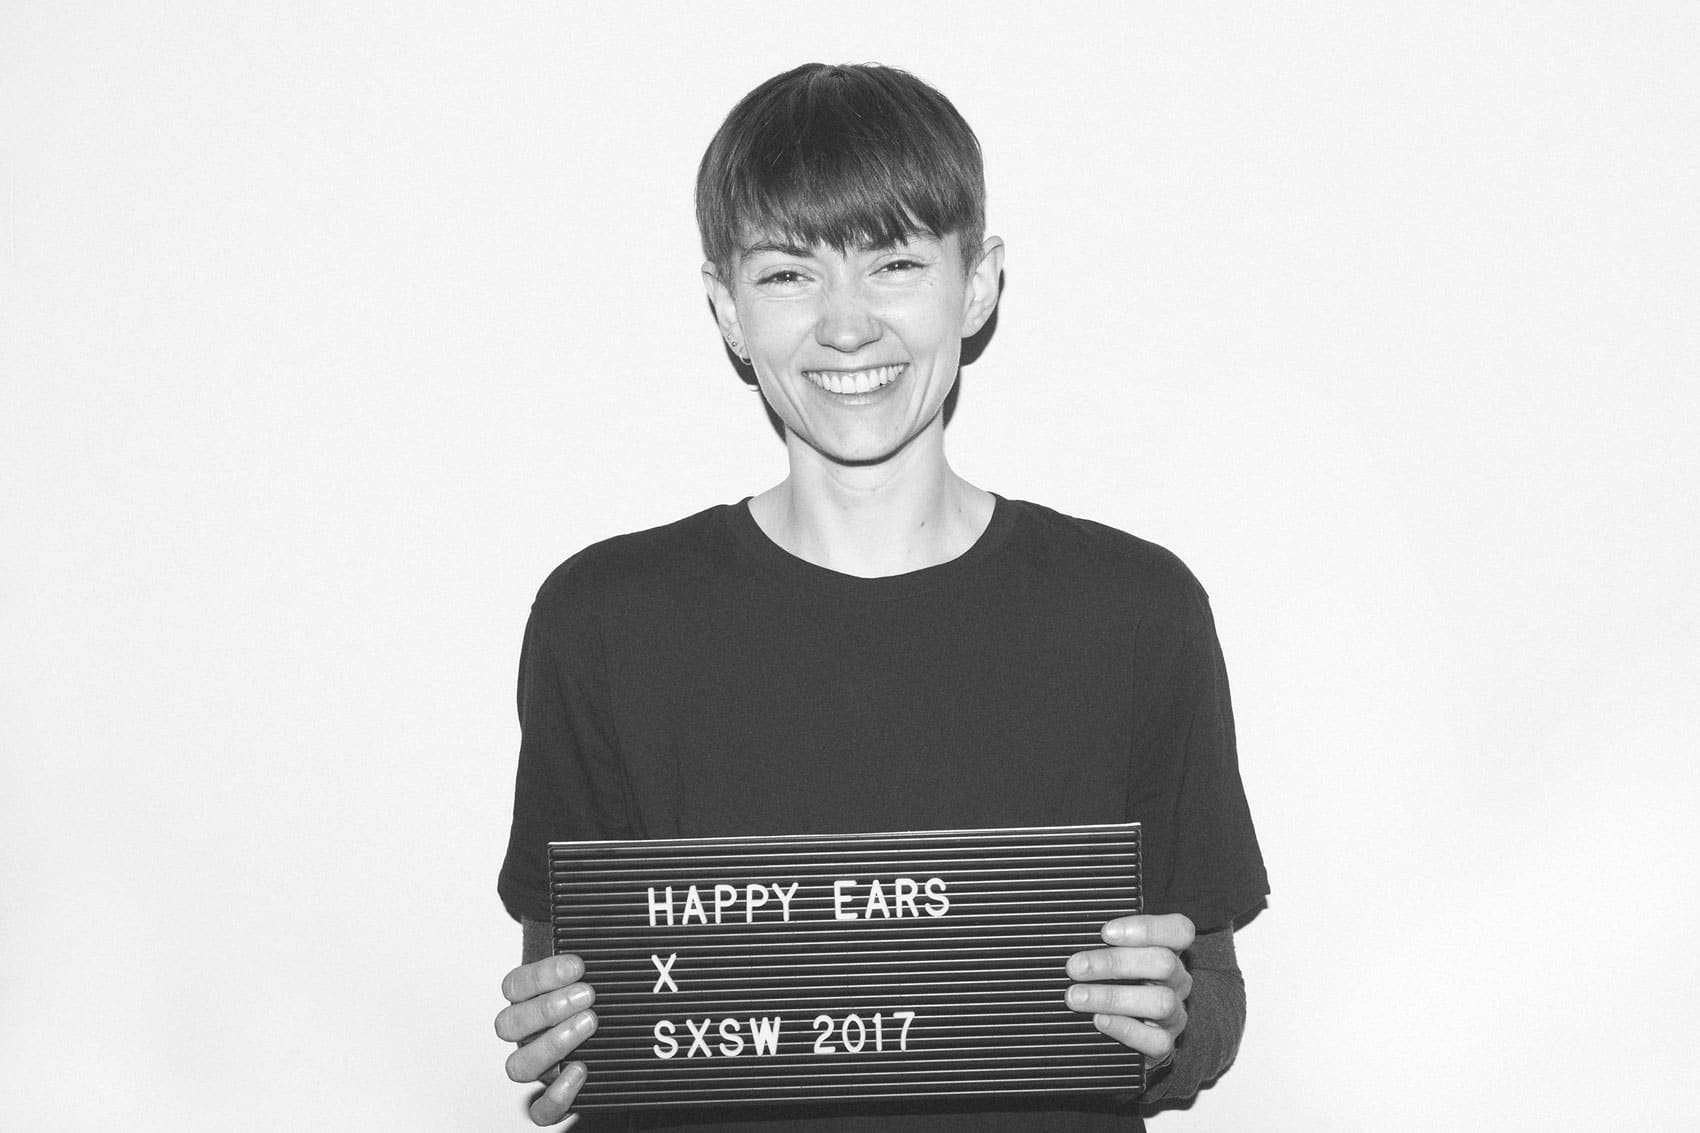 smiling woman with short hair holding up Happy Ears sign